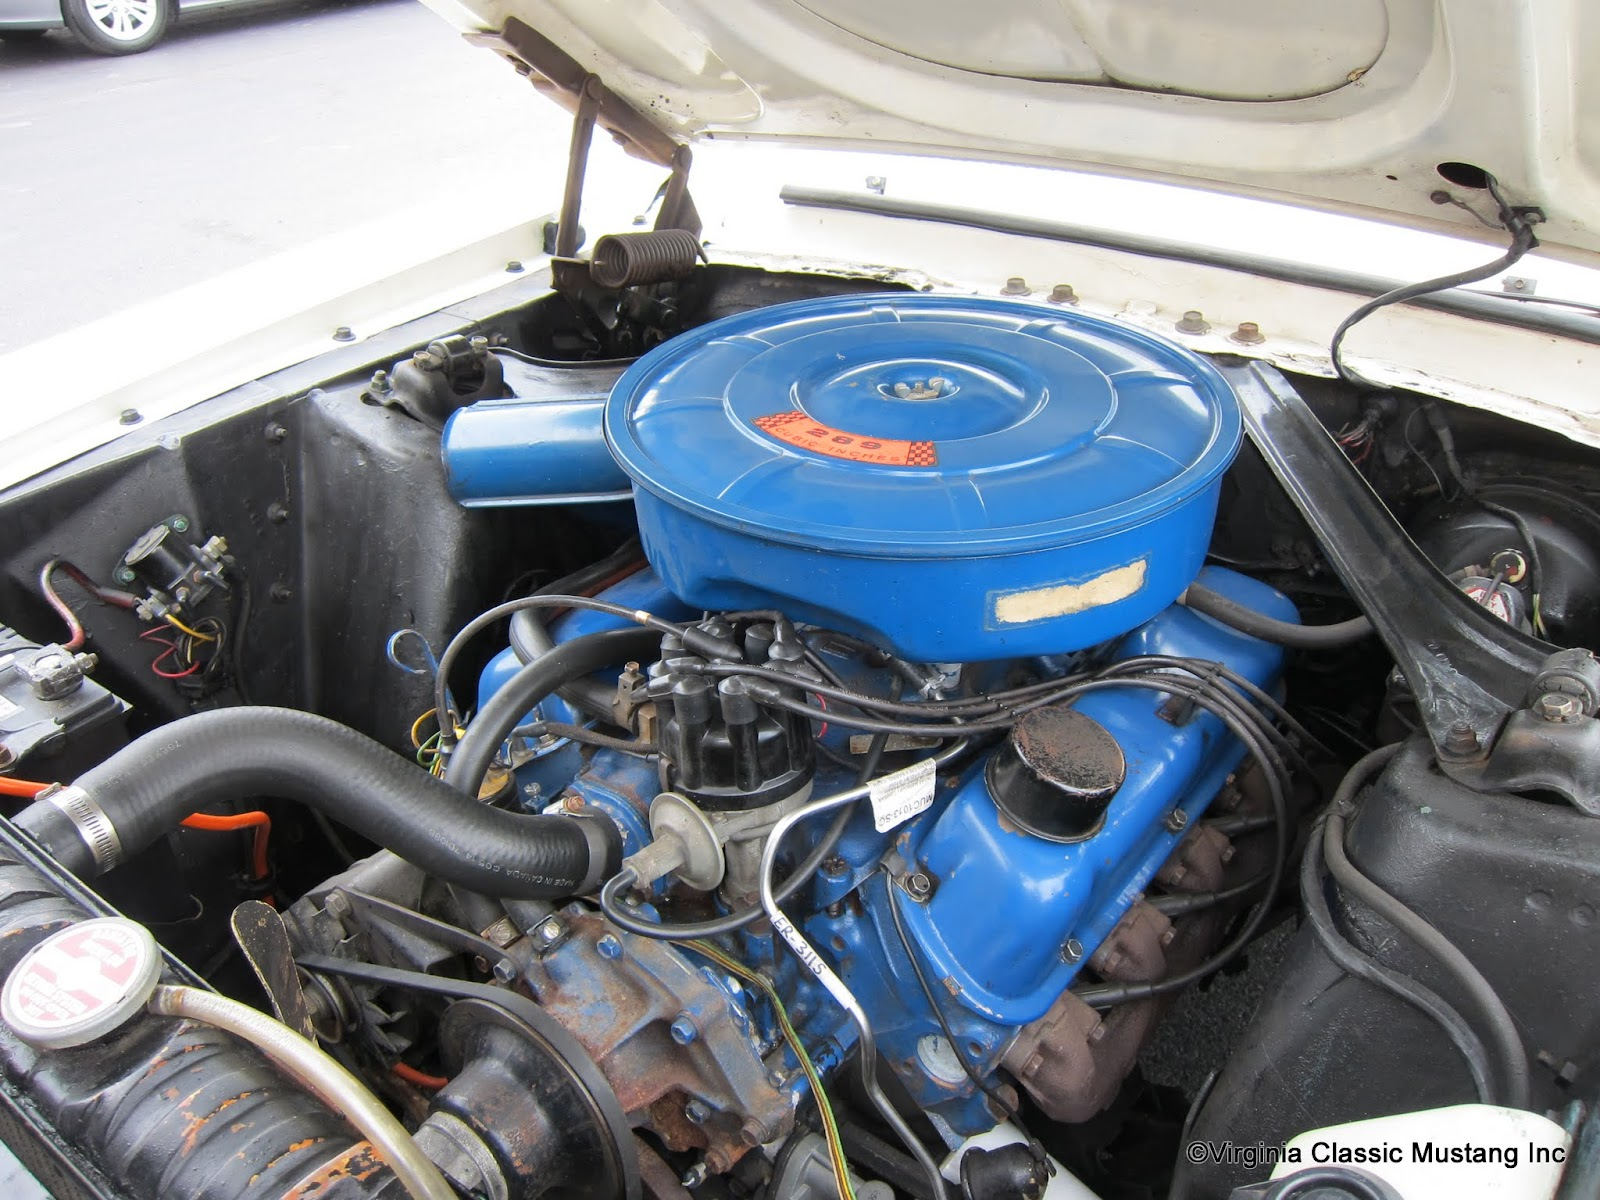 hight resolution of 1967 gt mustang coupe 289 4v engine the paint on the engine is original